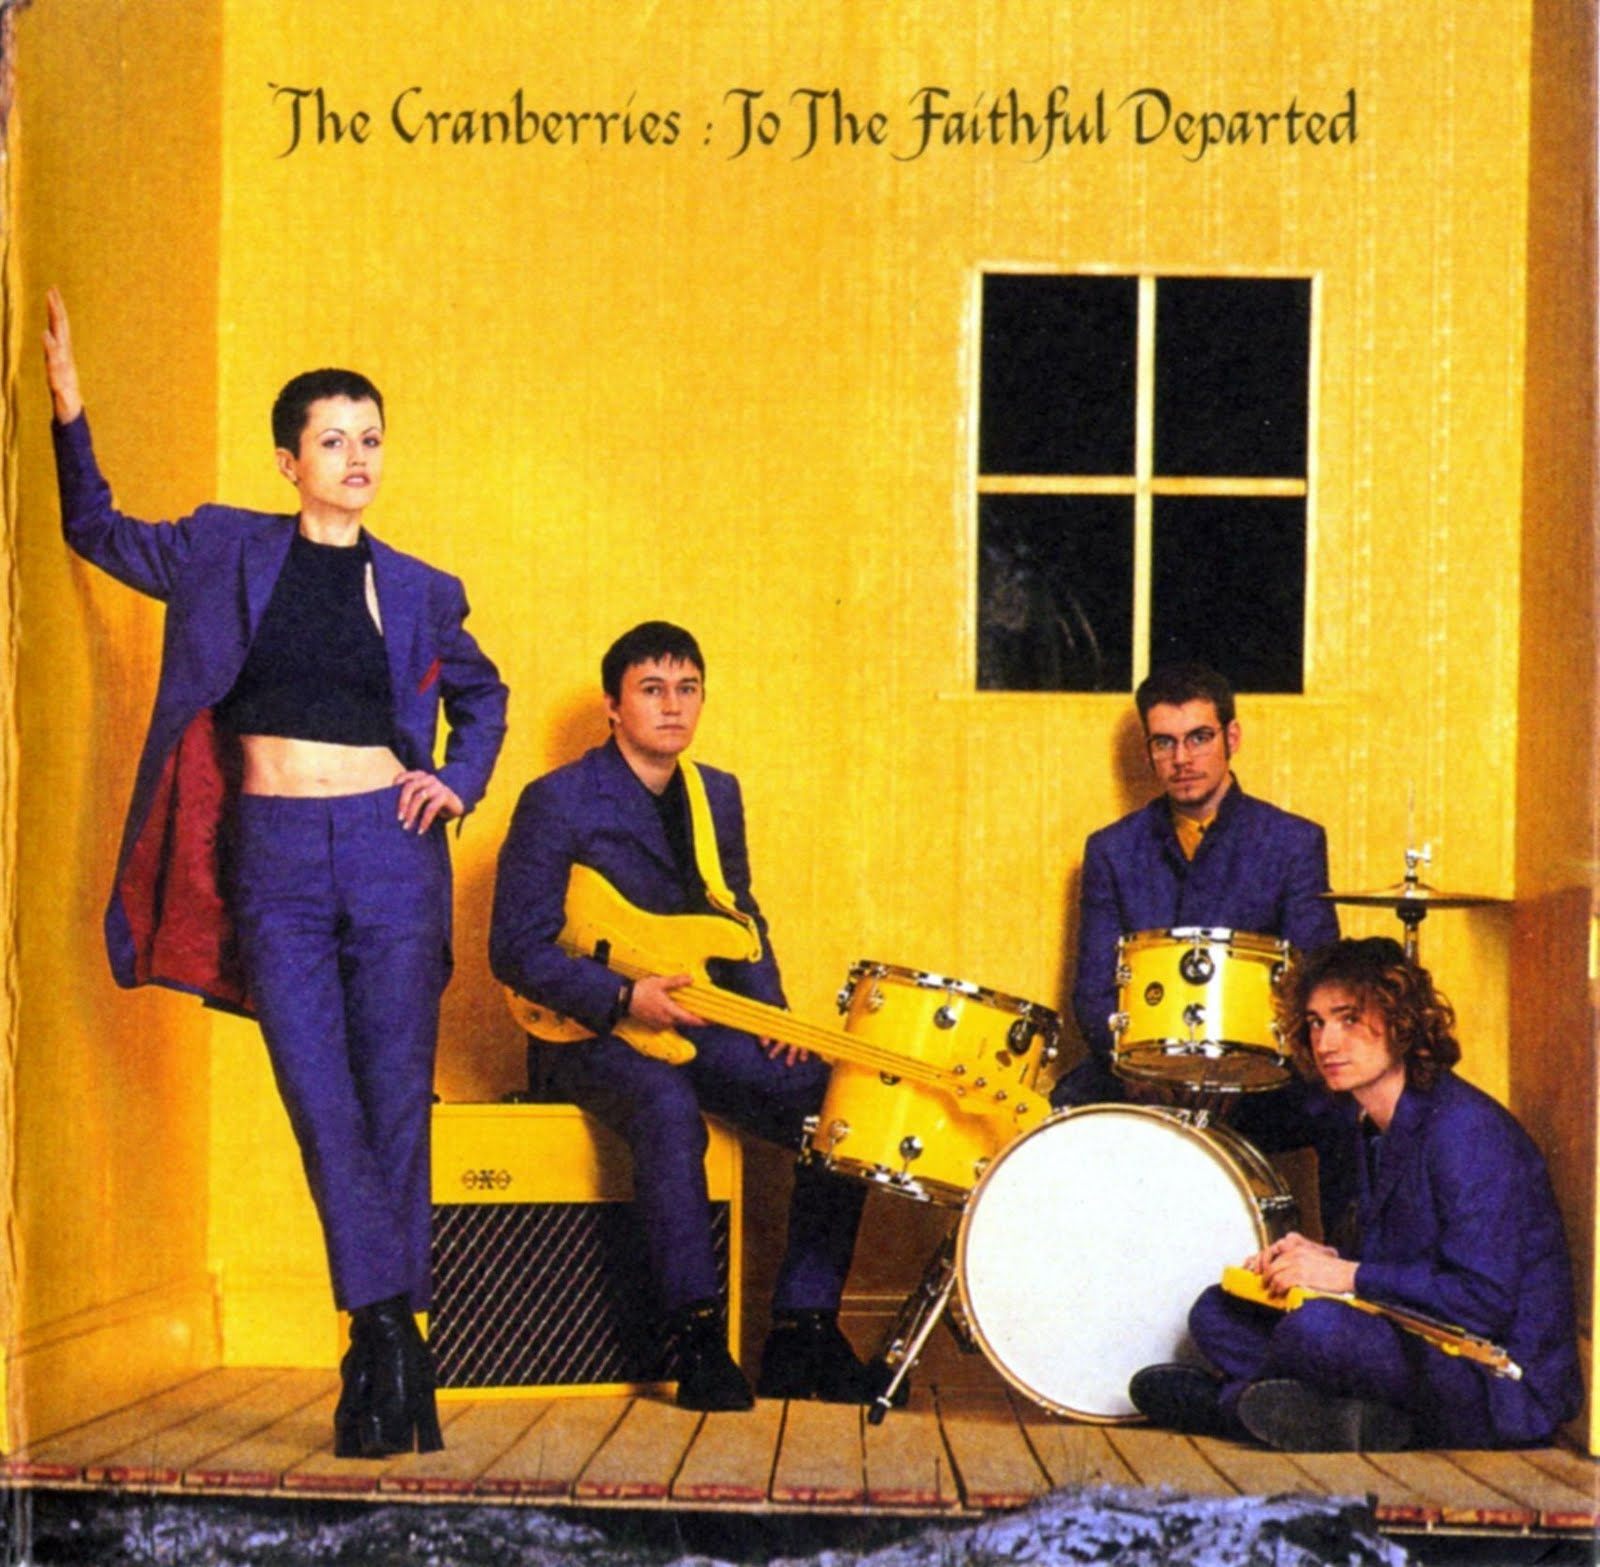 03+-+The_Cranberries_-_To_The_Faithful_Departed_-_Front.jpg